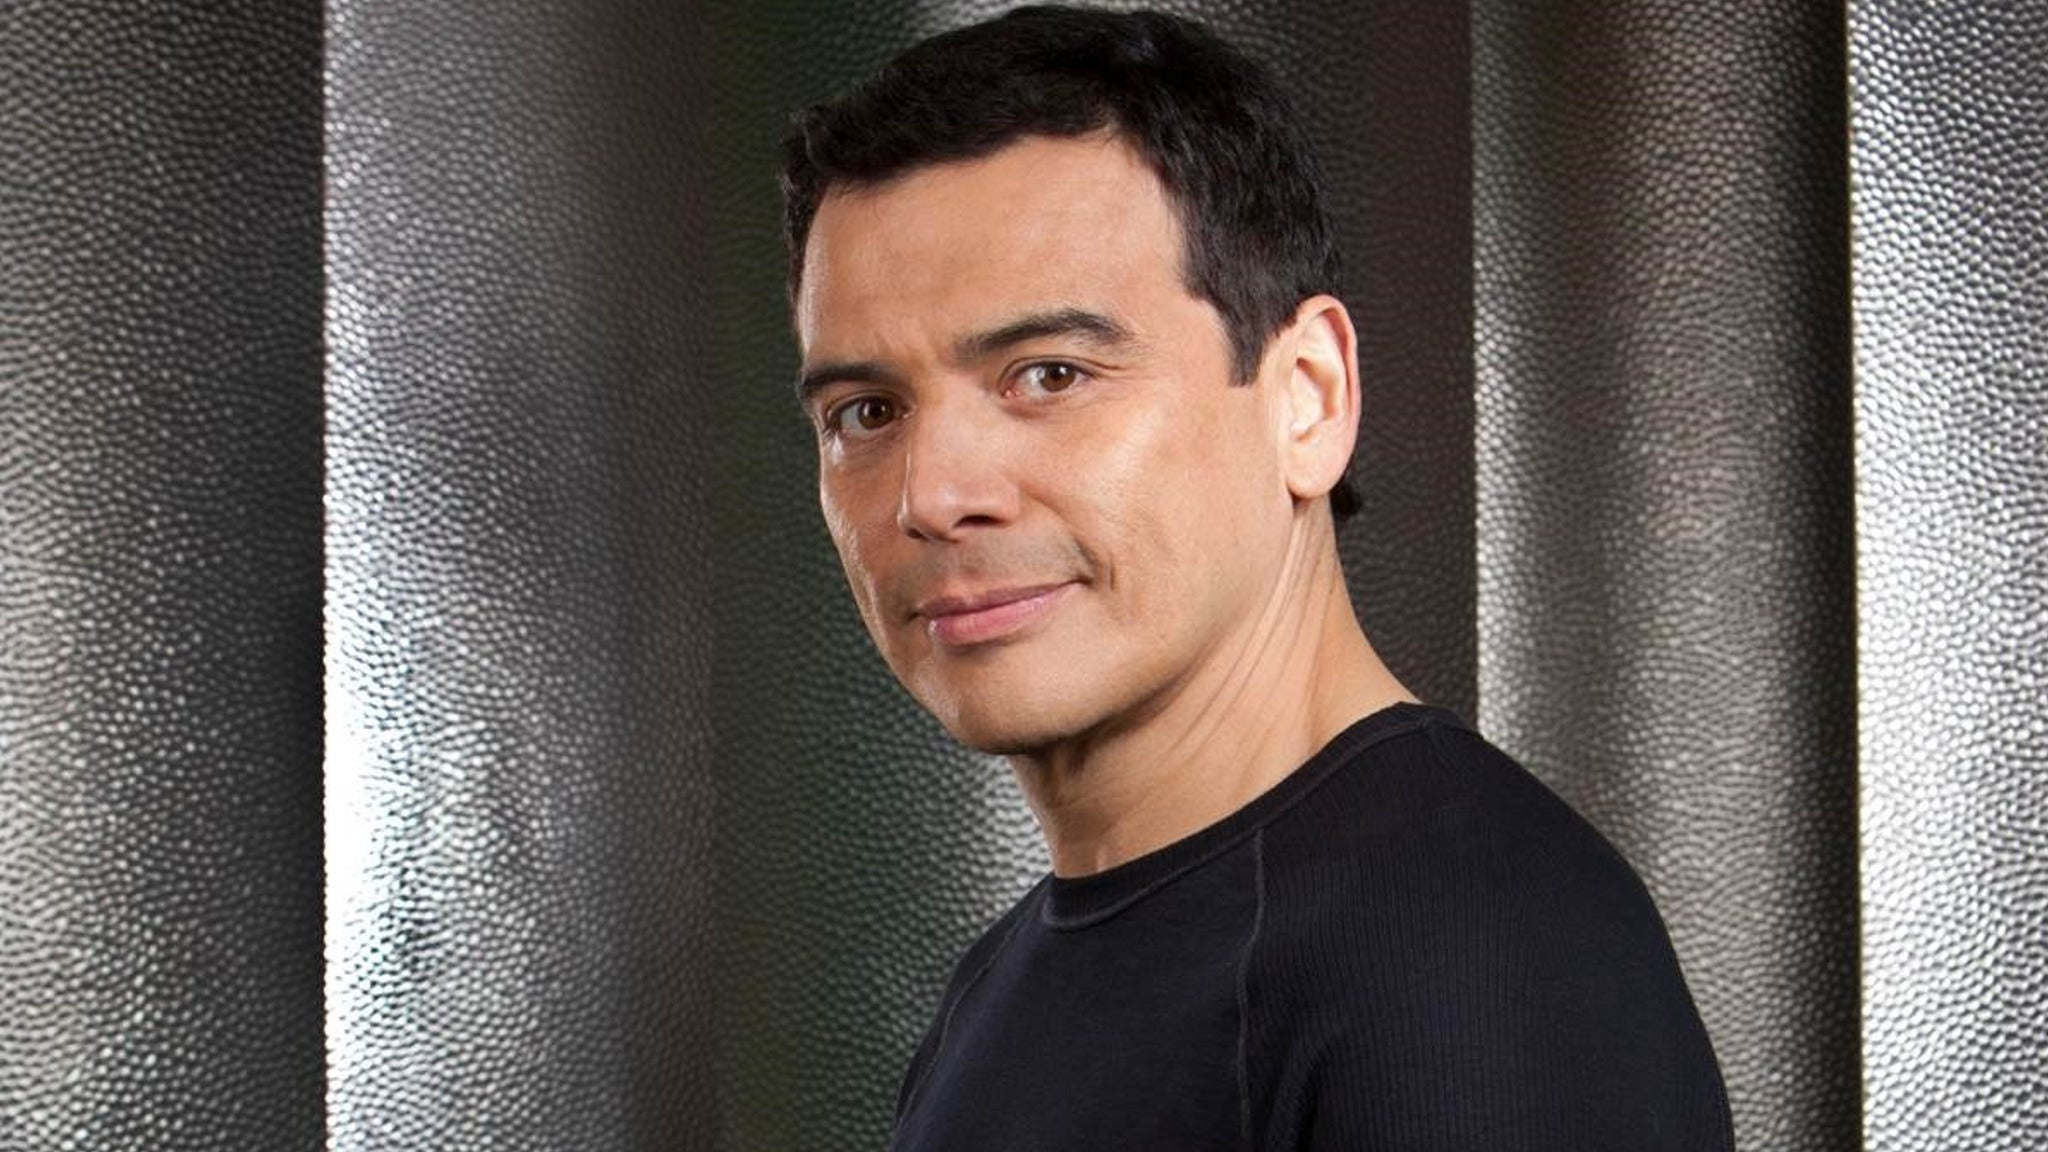 Carlos Mencia at Chicago Improv